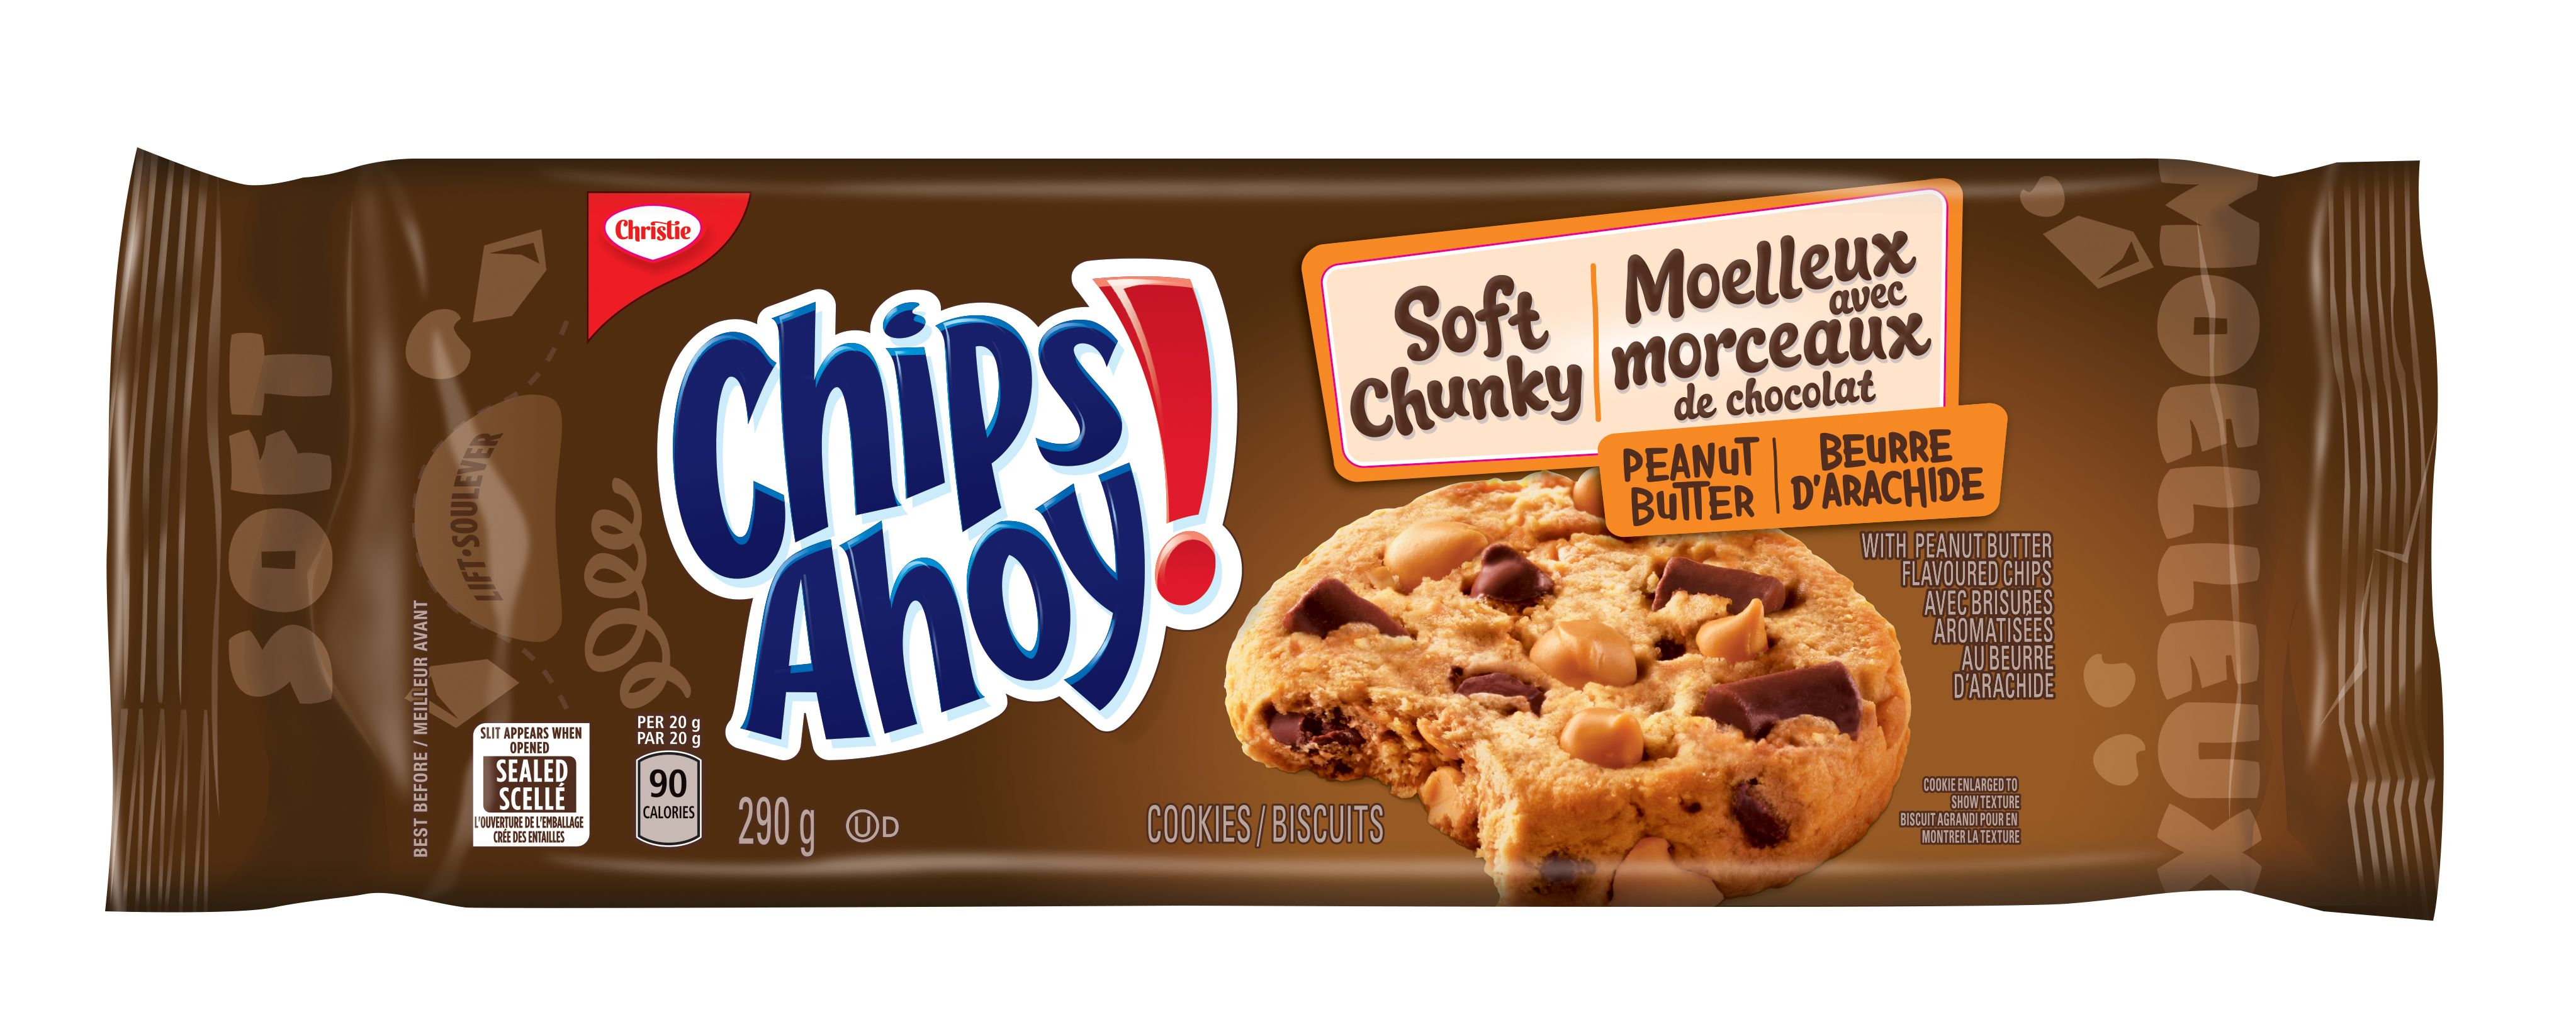 Chips Ahoy! Soft Chunky Peanut Butter Cookies 290 G